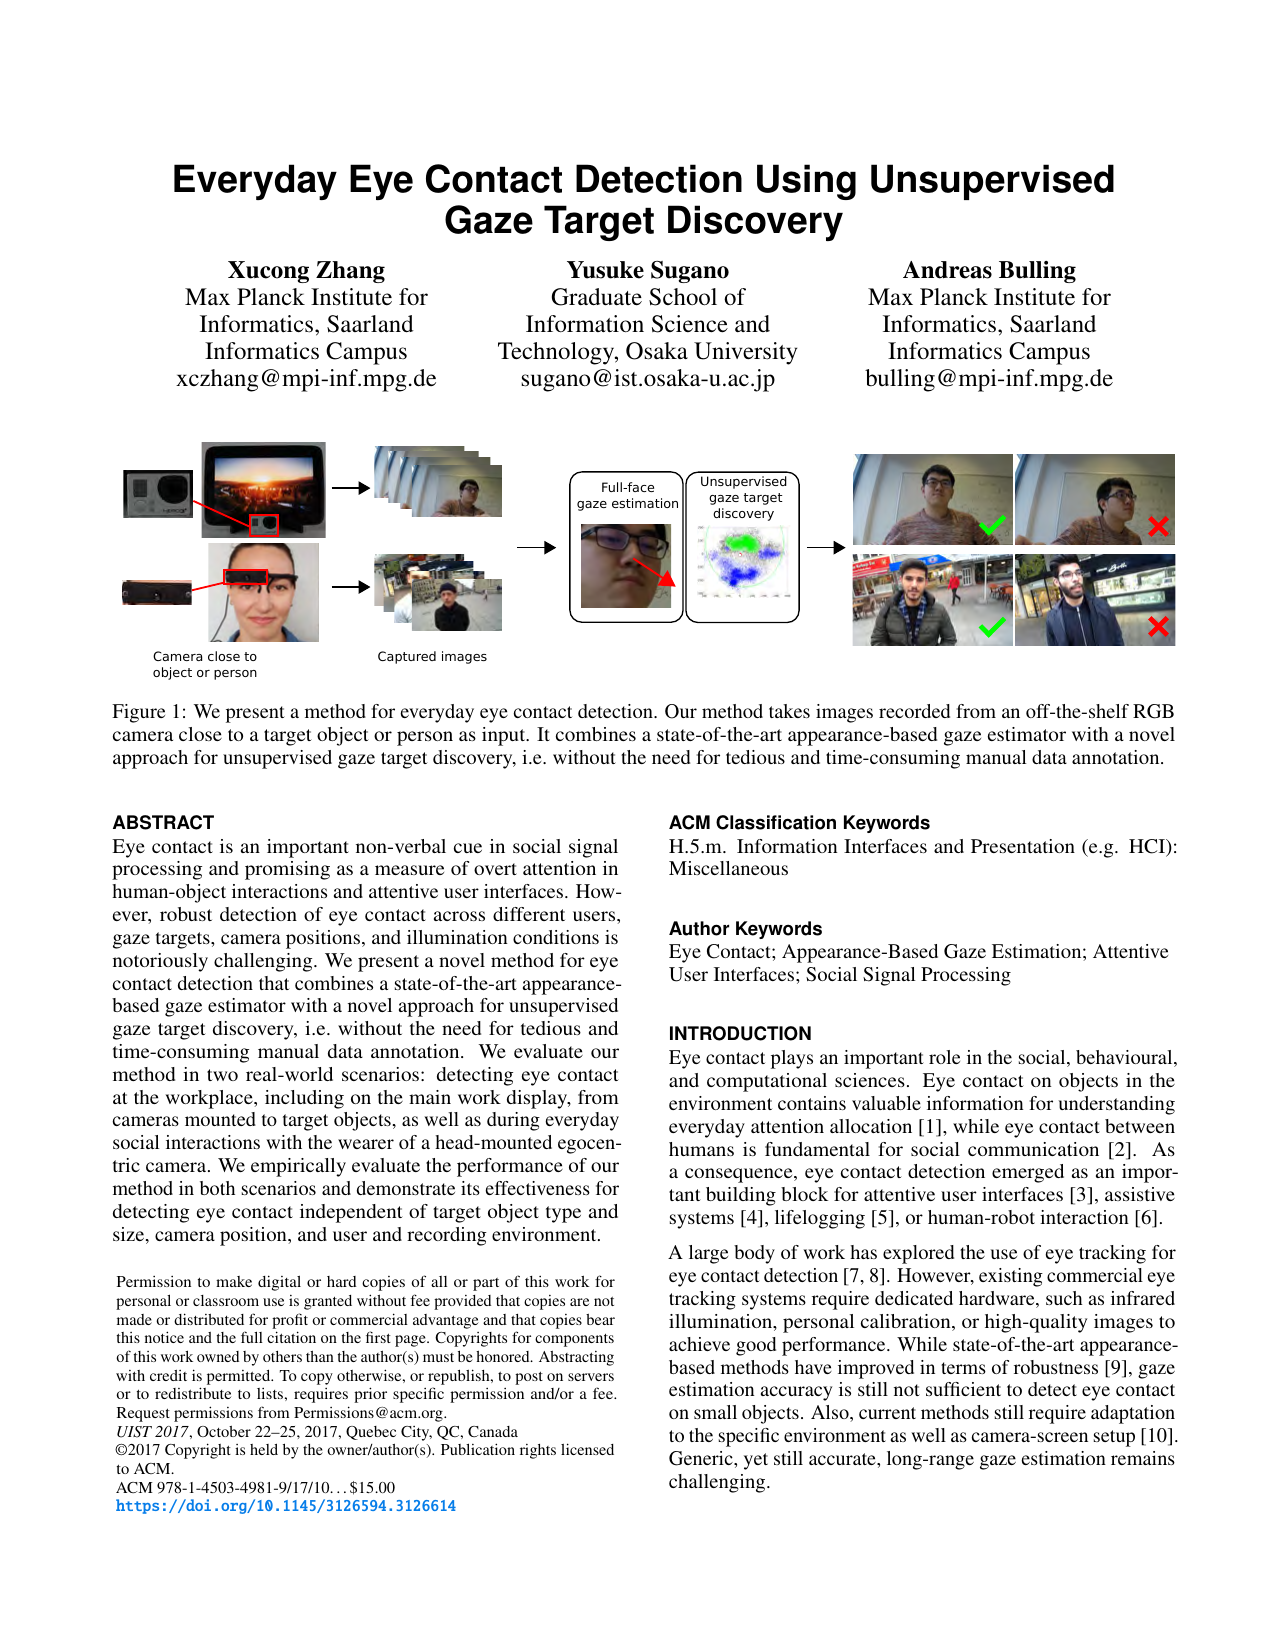 Everyday Eye Contact Detection Using Unsupervised Gaze Target Discovery